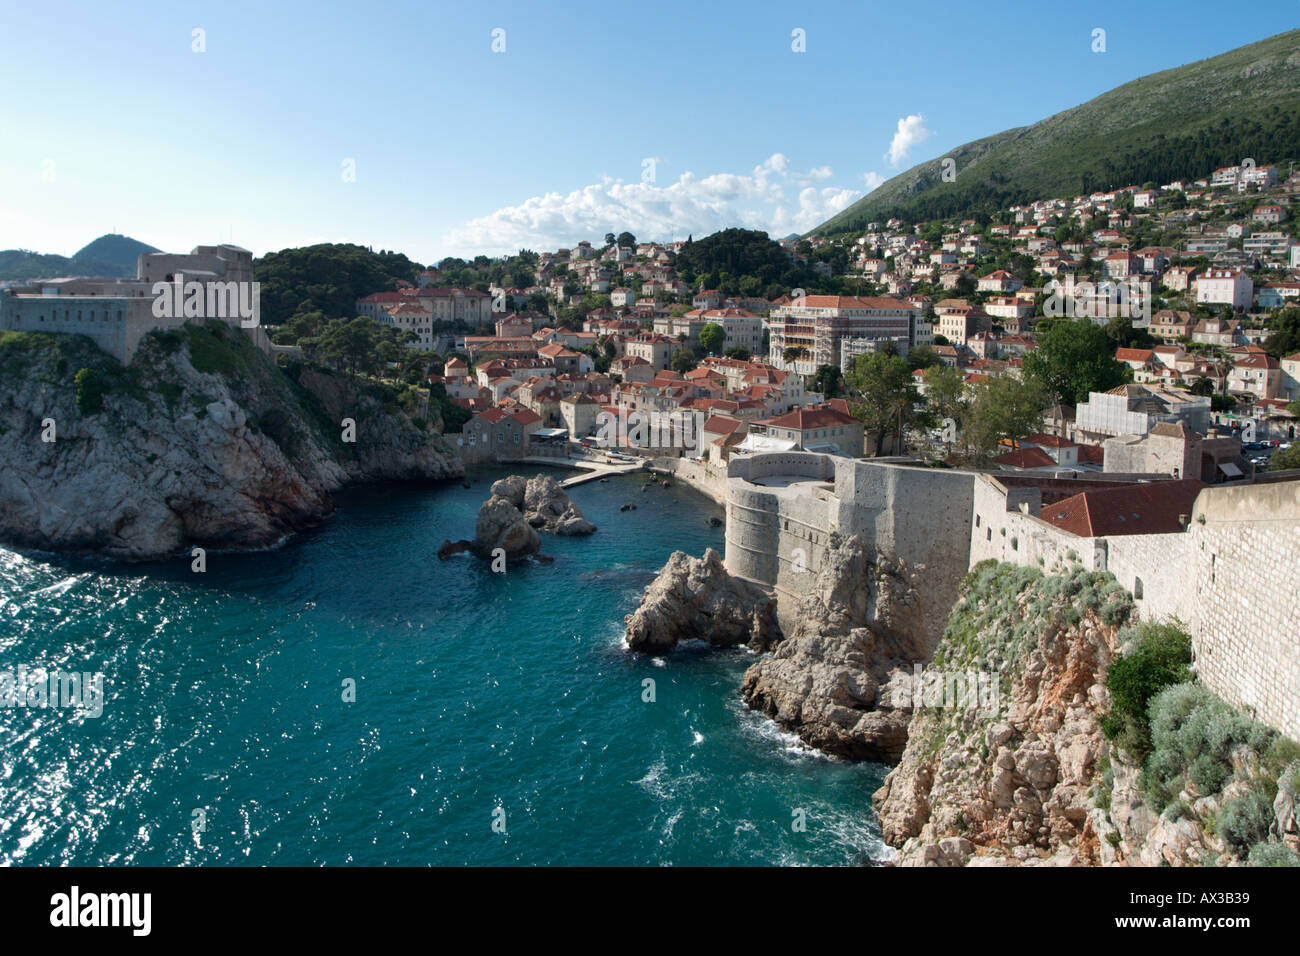 View from the City Walls, Dubrovnik, Dalmatian Coast, Croatia Stock Photo